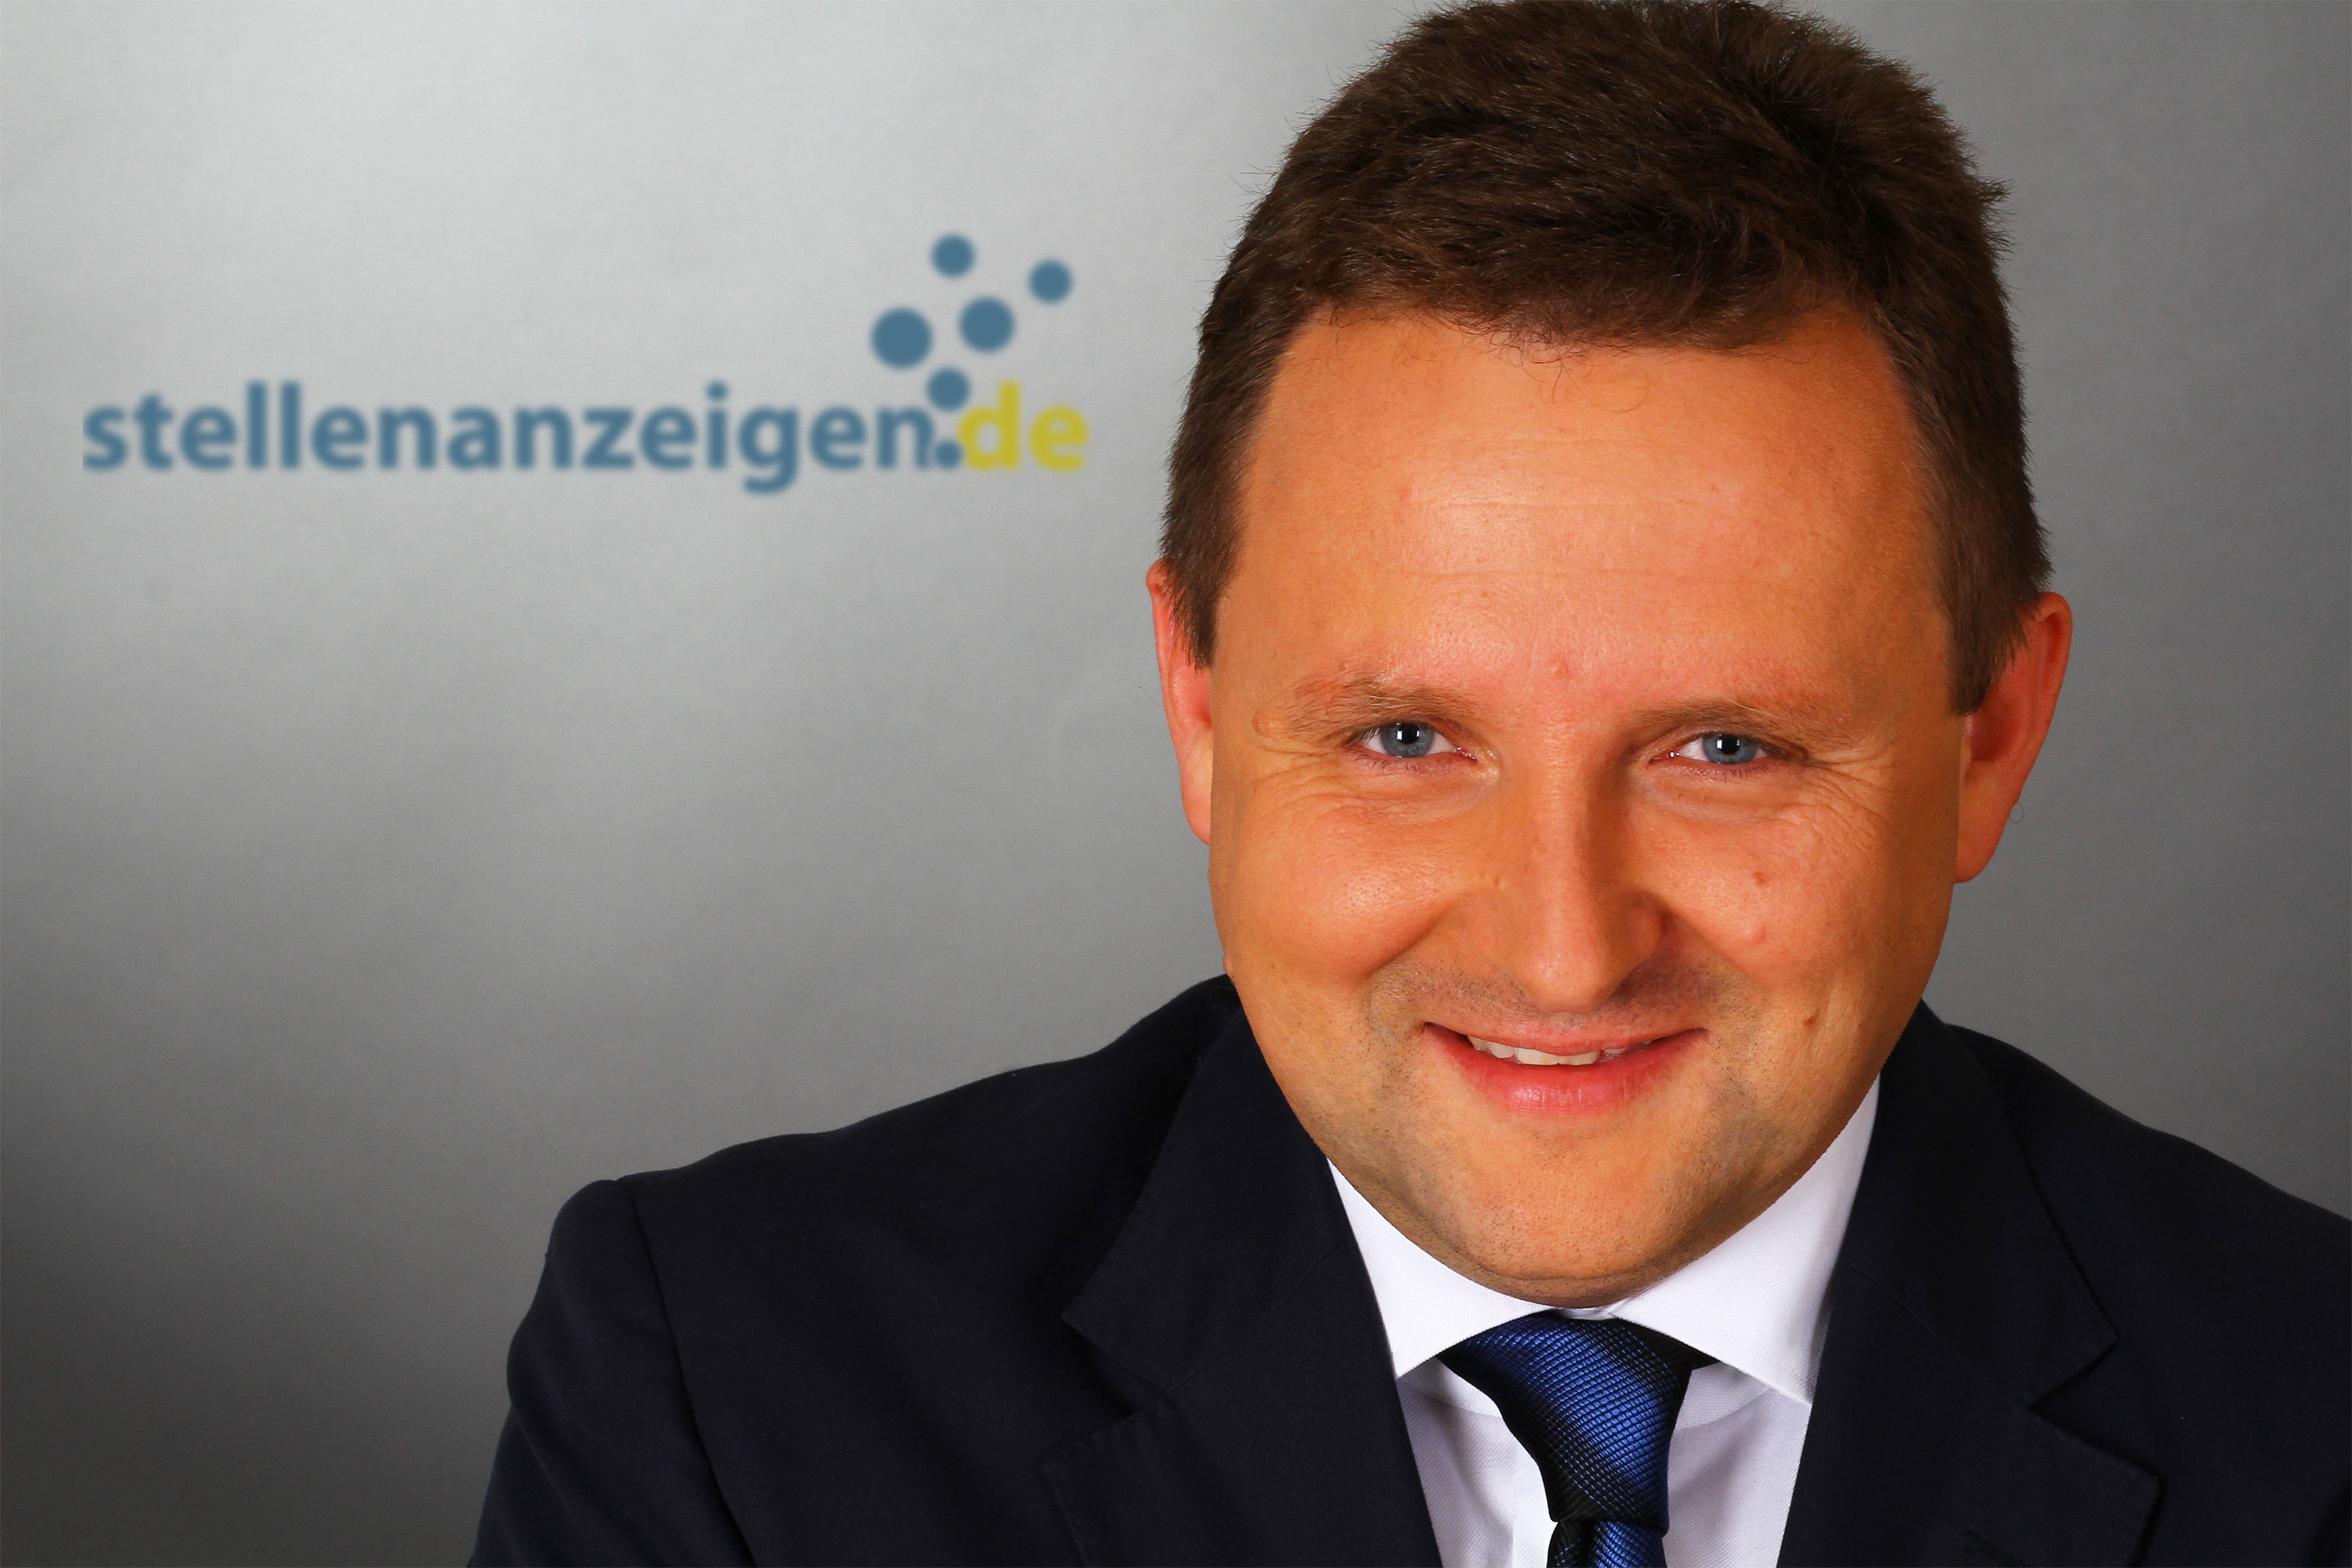 Peter Langbauer holds a degree in economics from the university of Vienna in Austria. After many years of experience as a CEO in different industries (software, textile, job site...), he is now the CEO of stellenanzeigen.de since 2012.